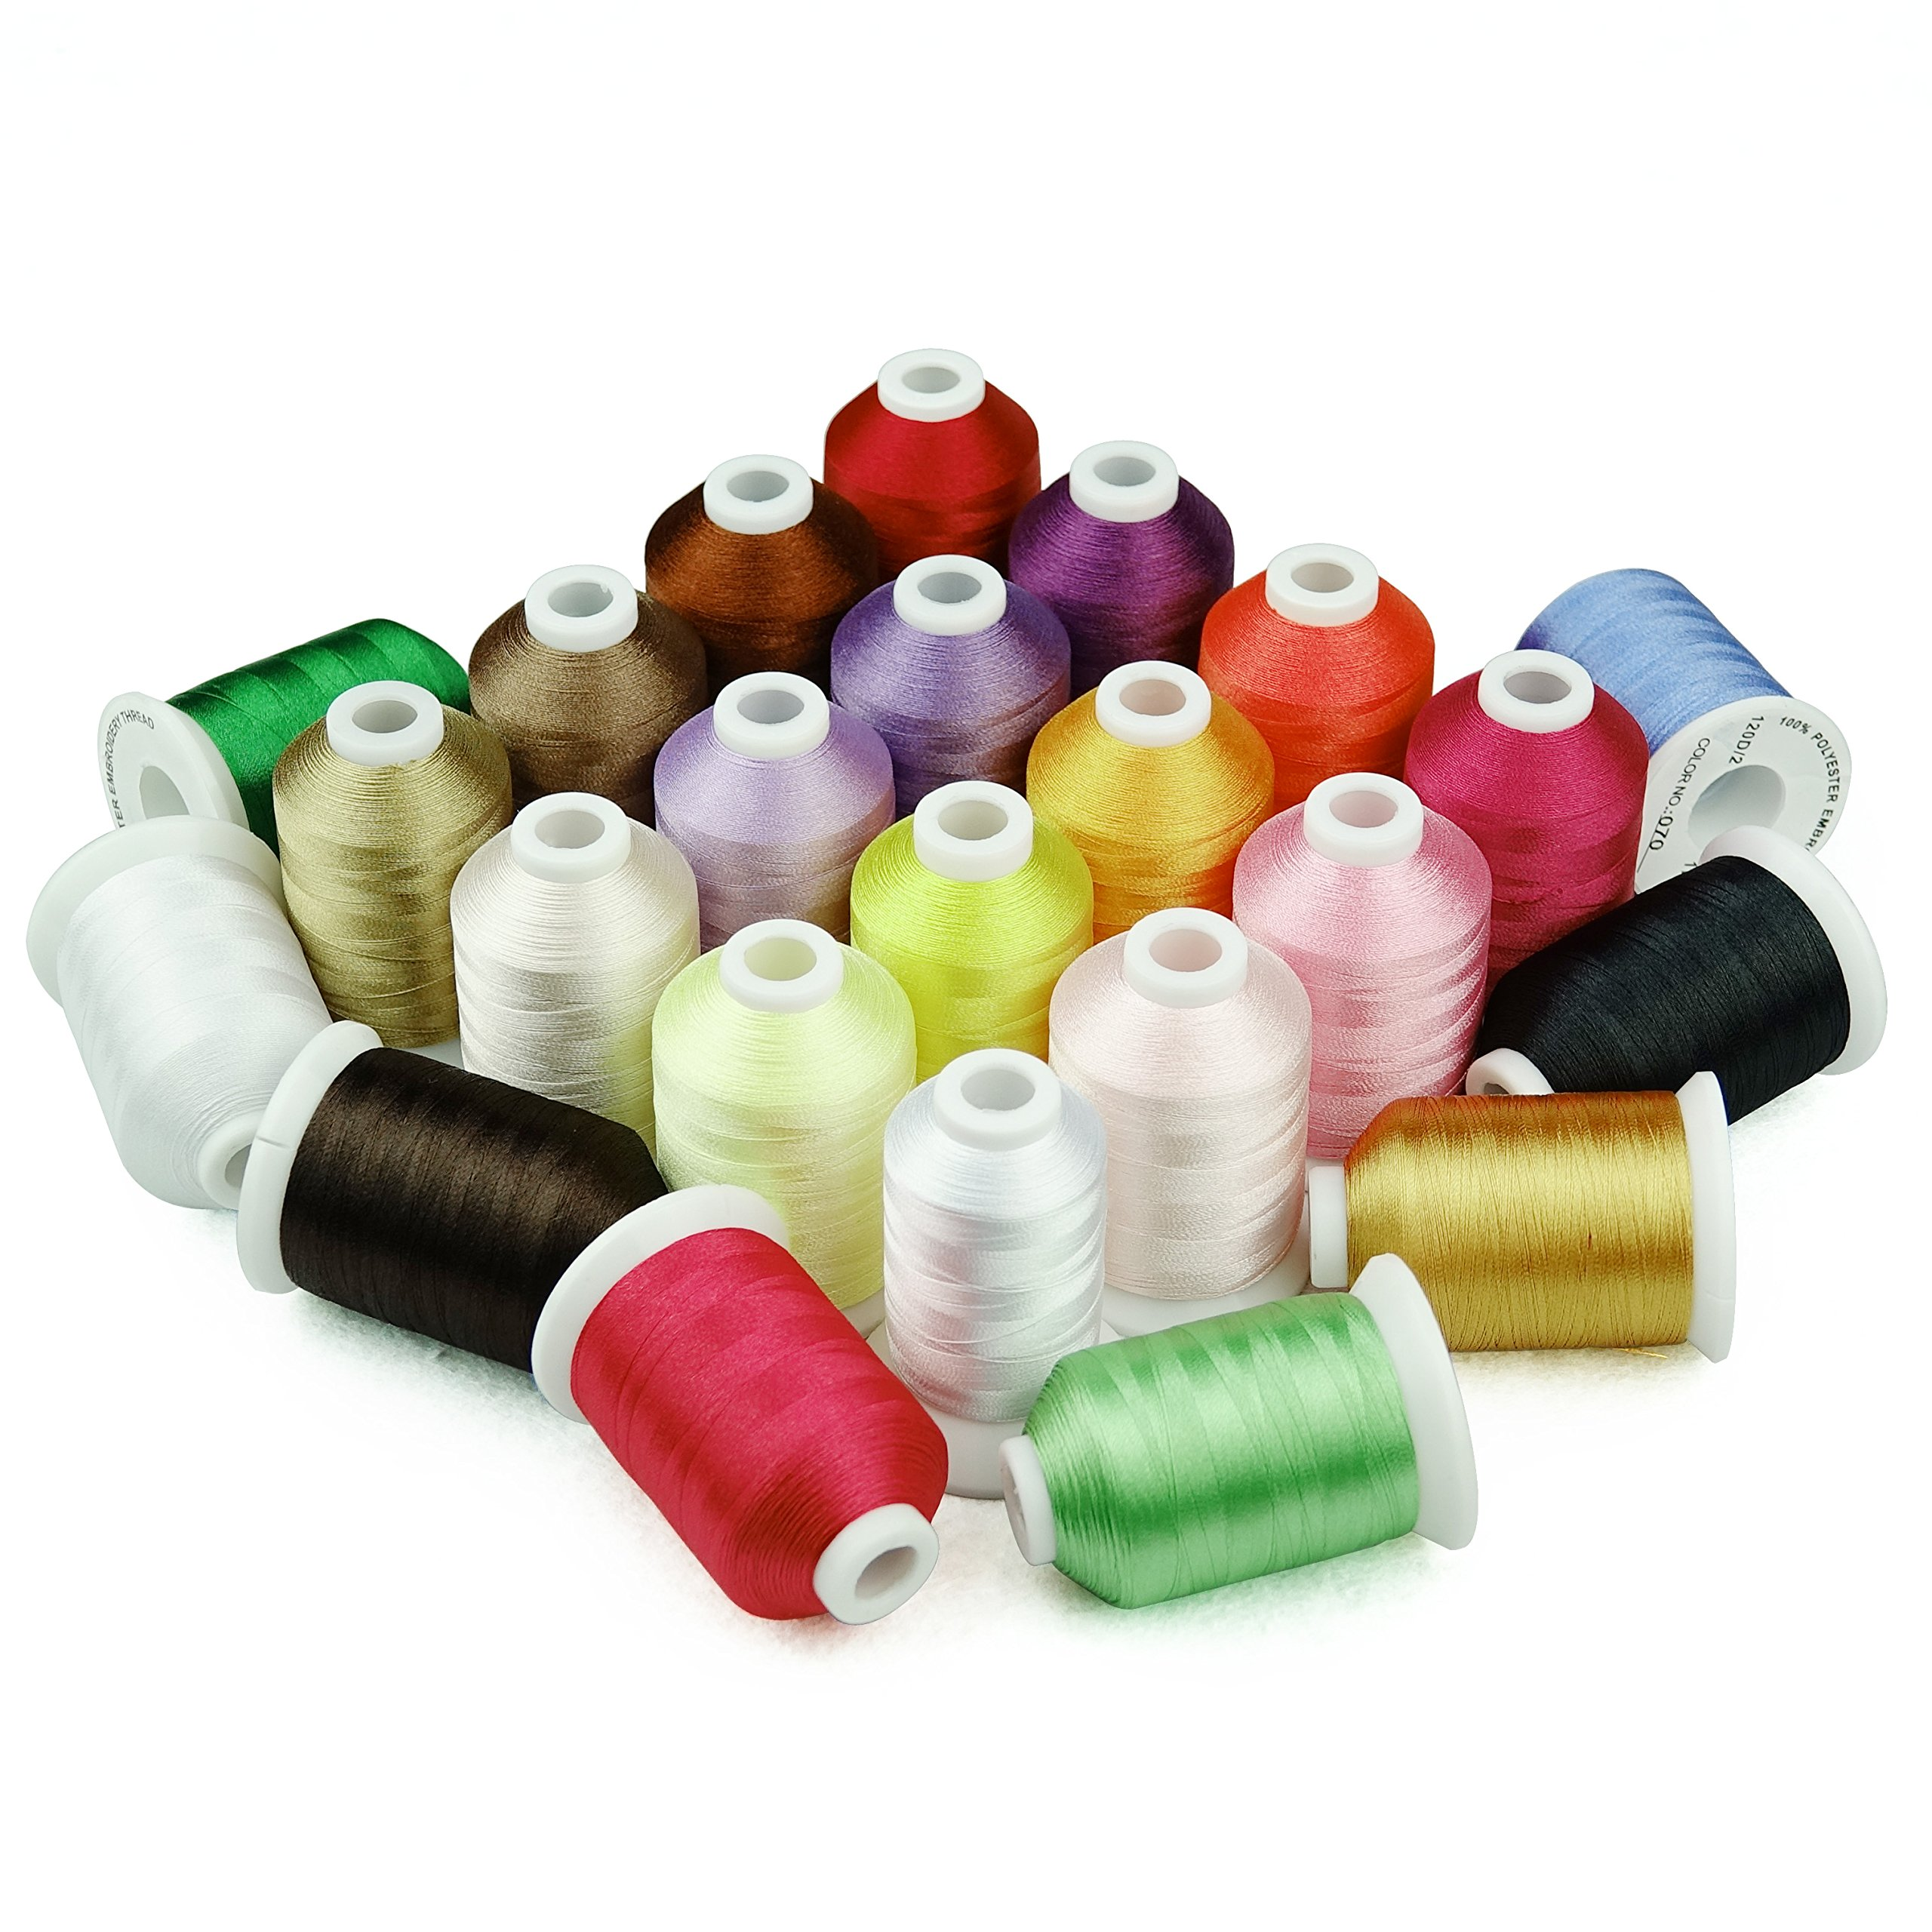 1000 Meters Huge Spool Polyester Embroidery Machine Thread Different Colors Set for Janome Brother Pfaff Babylock Singer Bernina Husqvaran Kenmore Machines (23 Colors) by Simthread